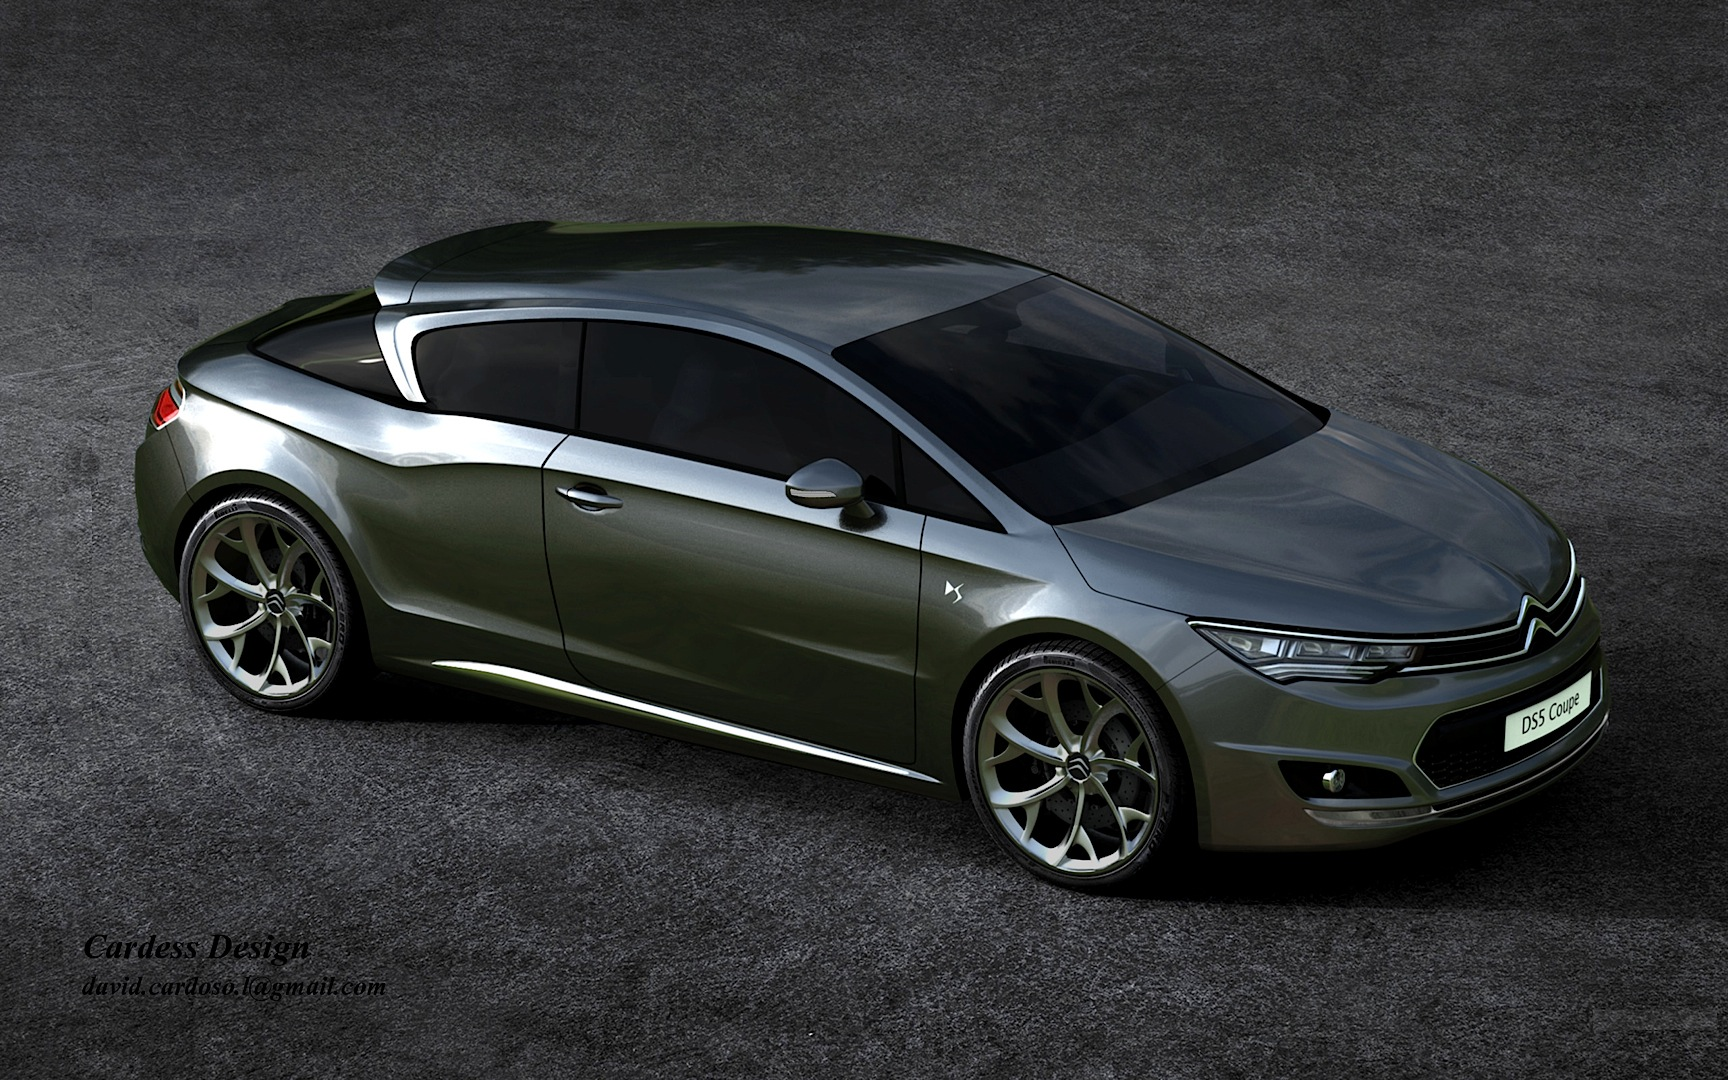 citroen ds5 coupe imagined by david cardoso autoevolution. Black Bedroom Furniture Sets. Home Design Ideas